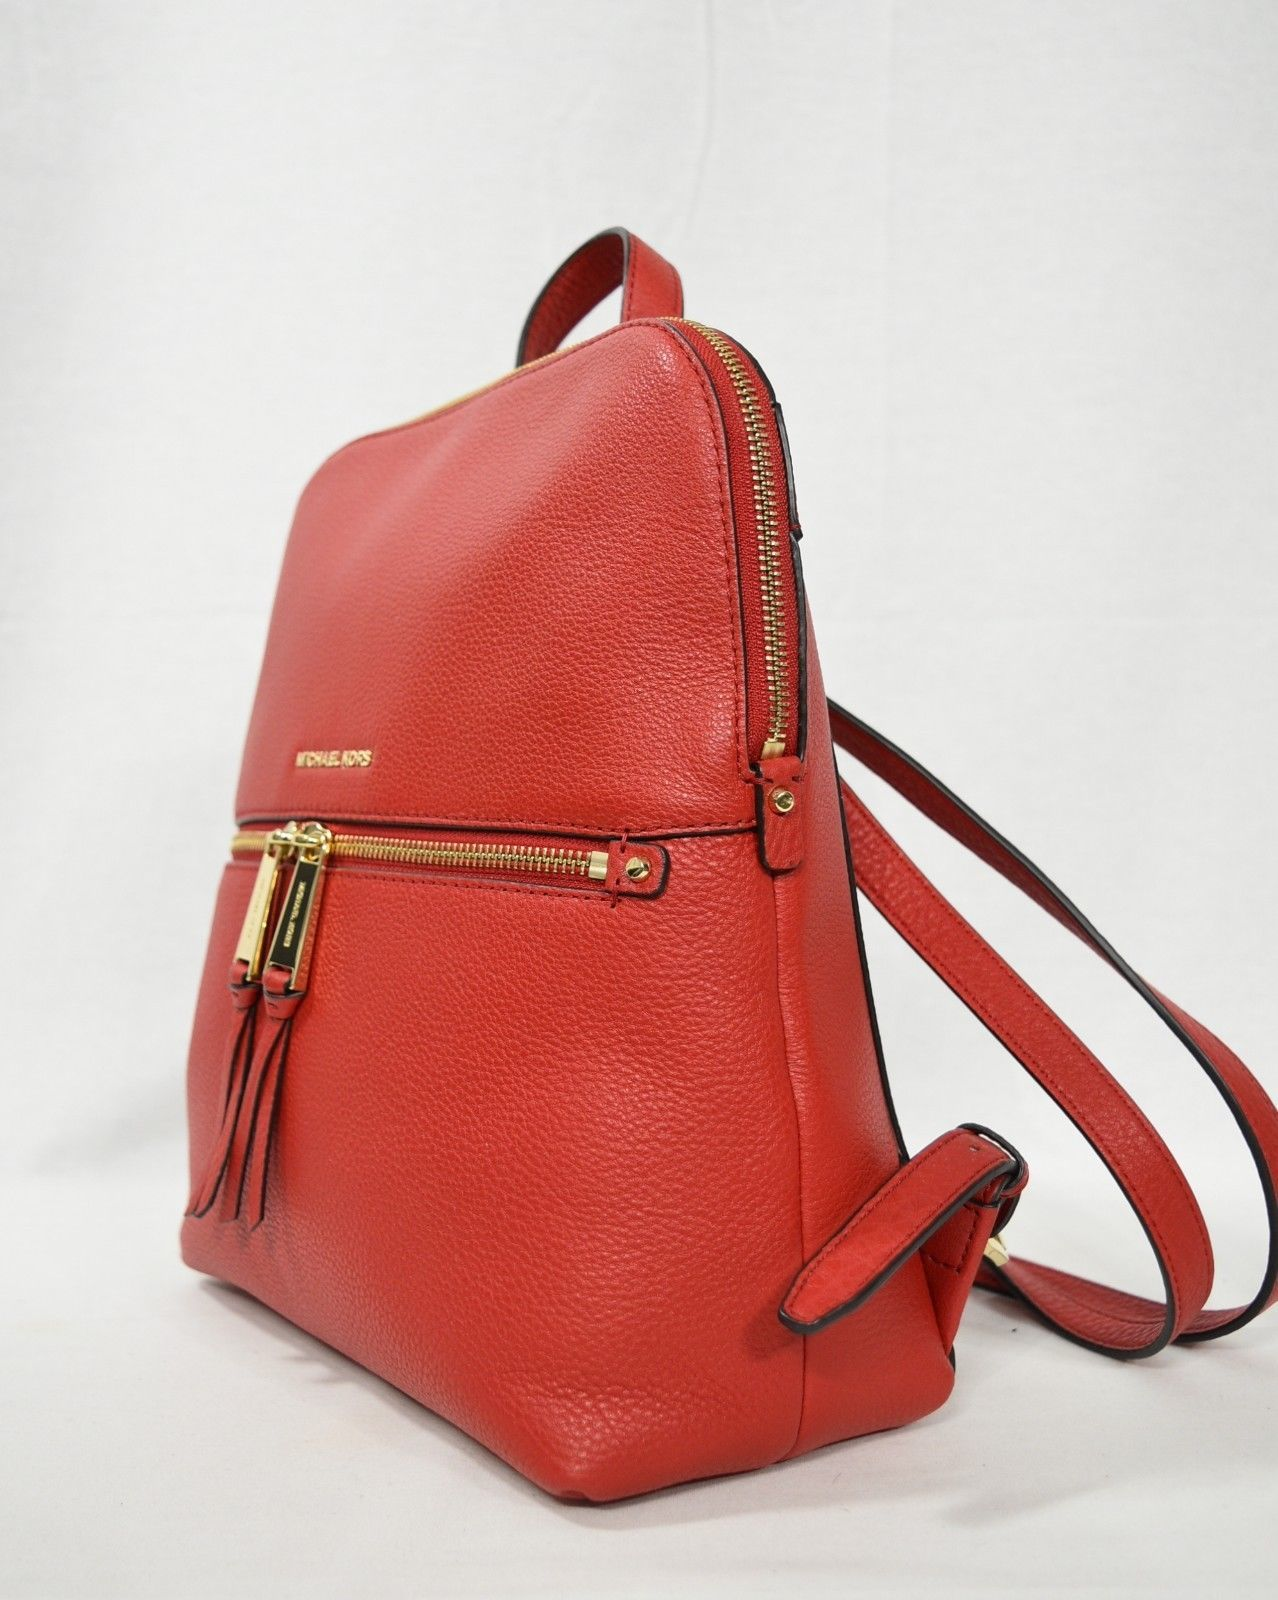 aa0bea1e8cb7 S l1600. S l1600. Previous. NWT! Michael Kors Leather Rhea Zip Medium Slim  Backpack in Bright Red. NWT! Michael ...